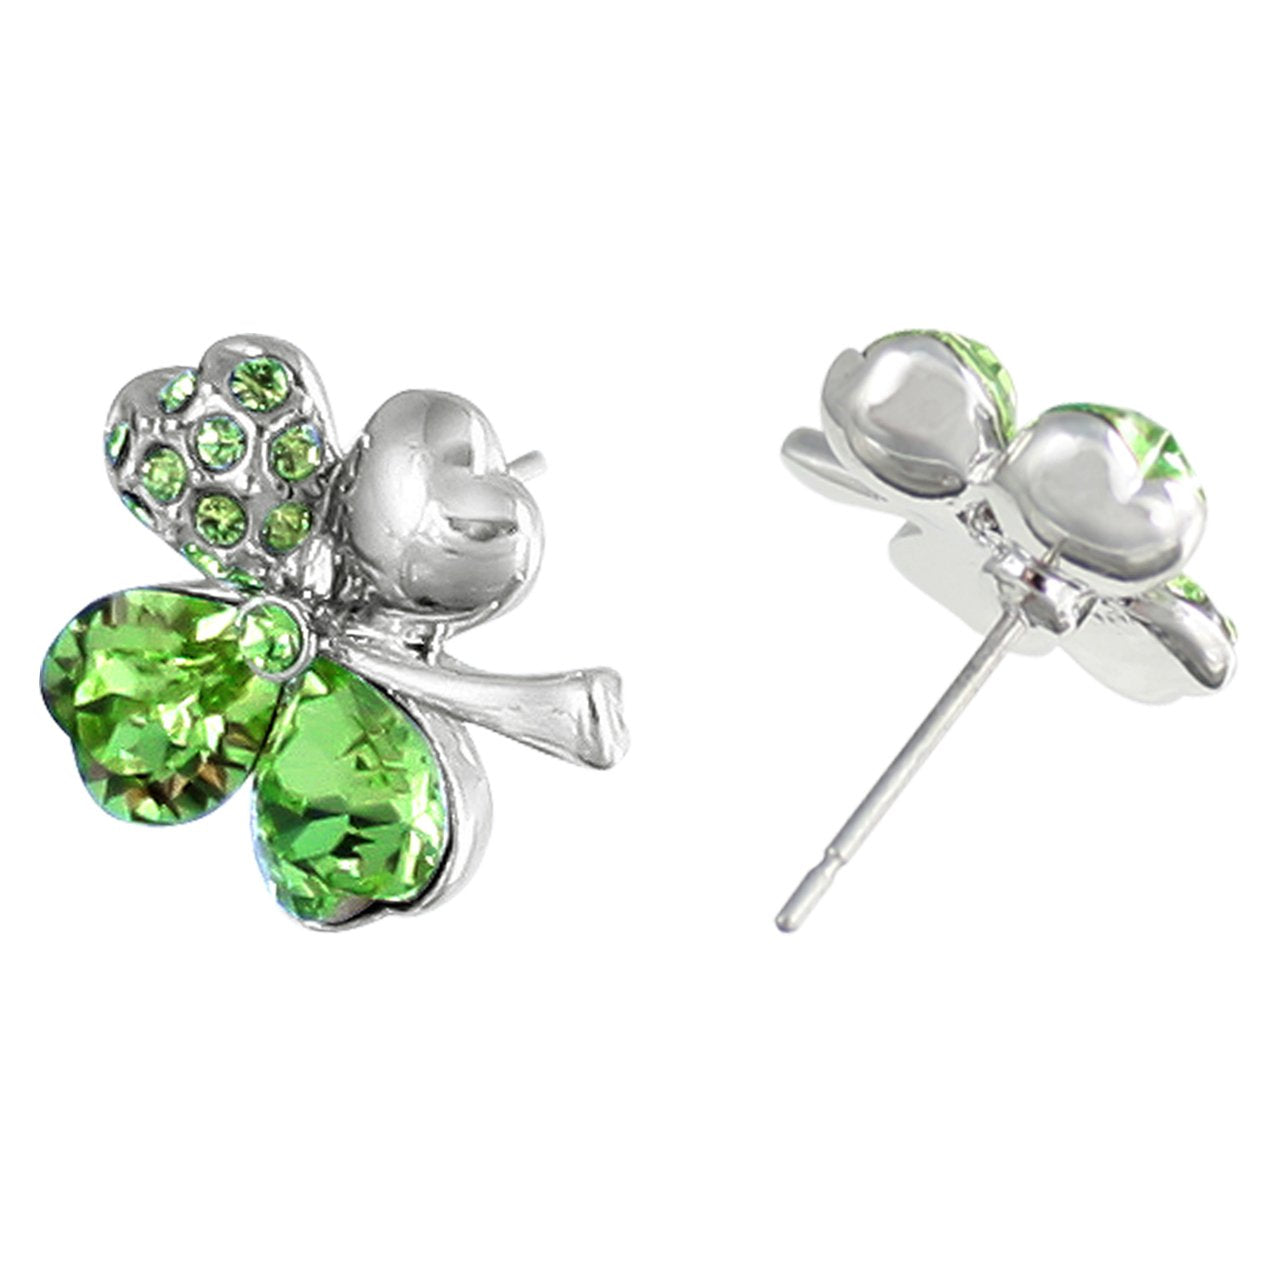 Green Four Heart Clover Earrings